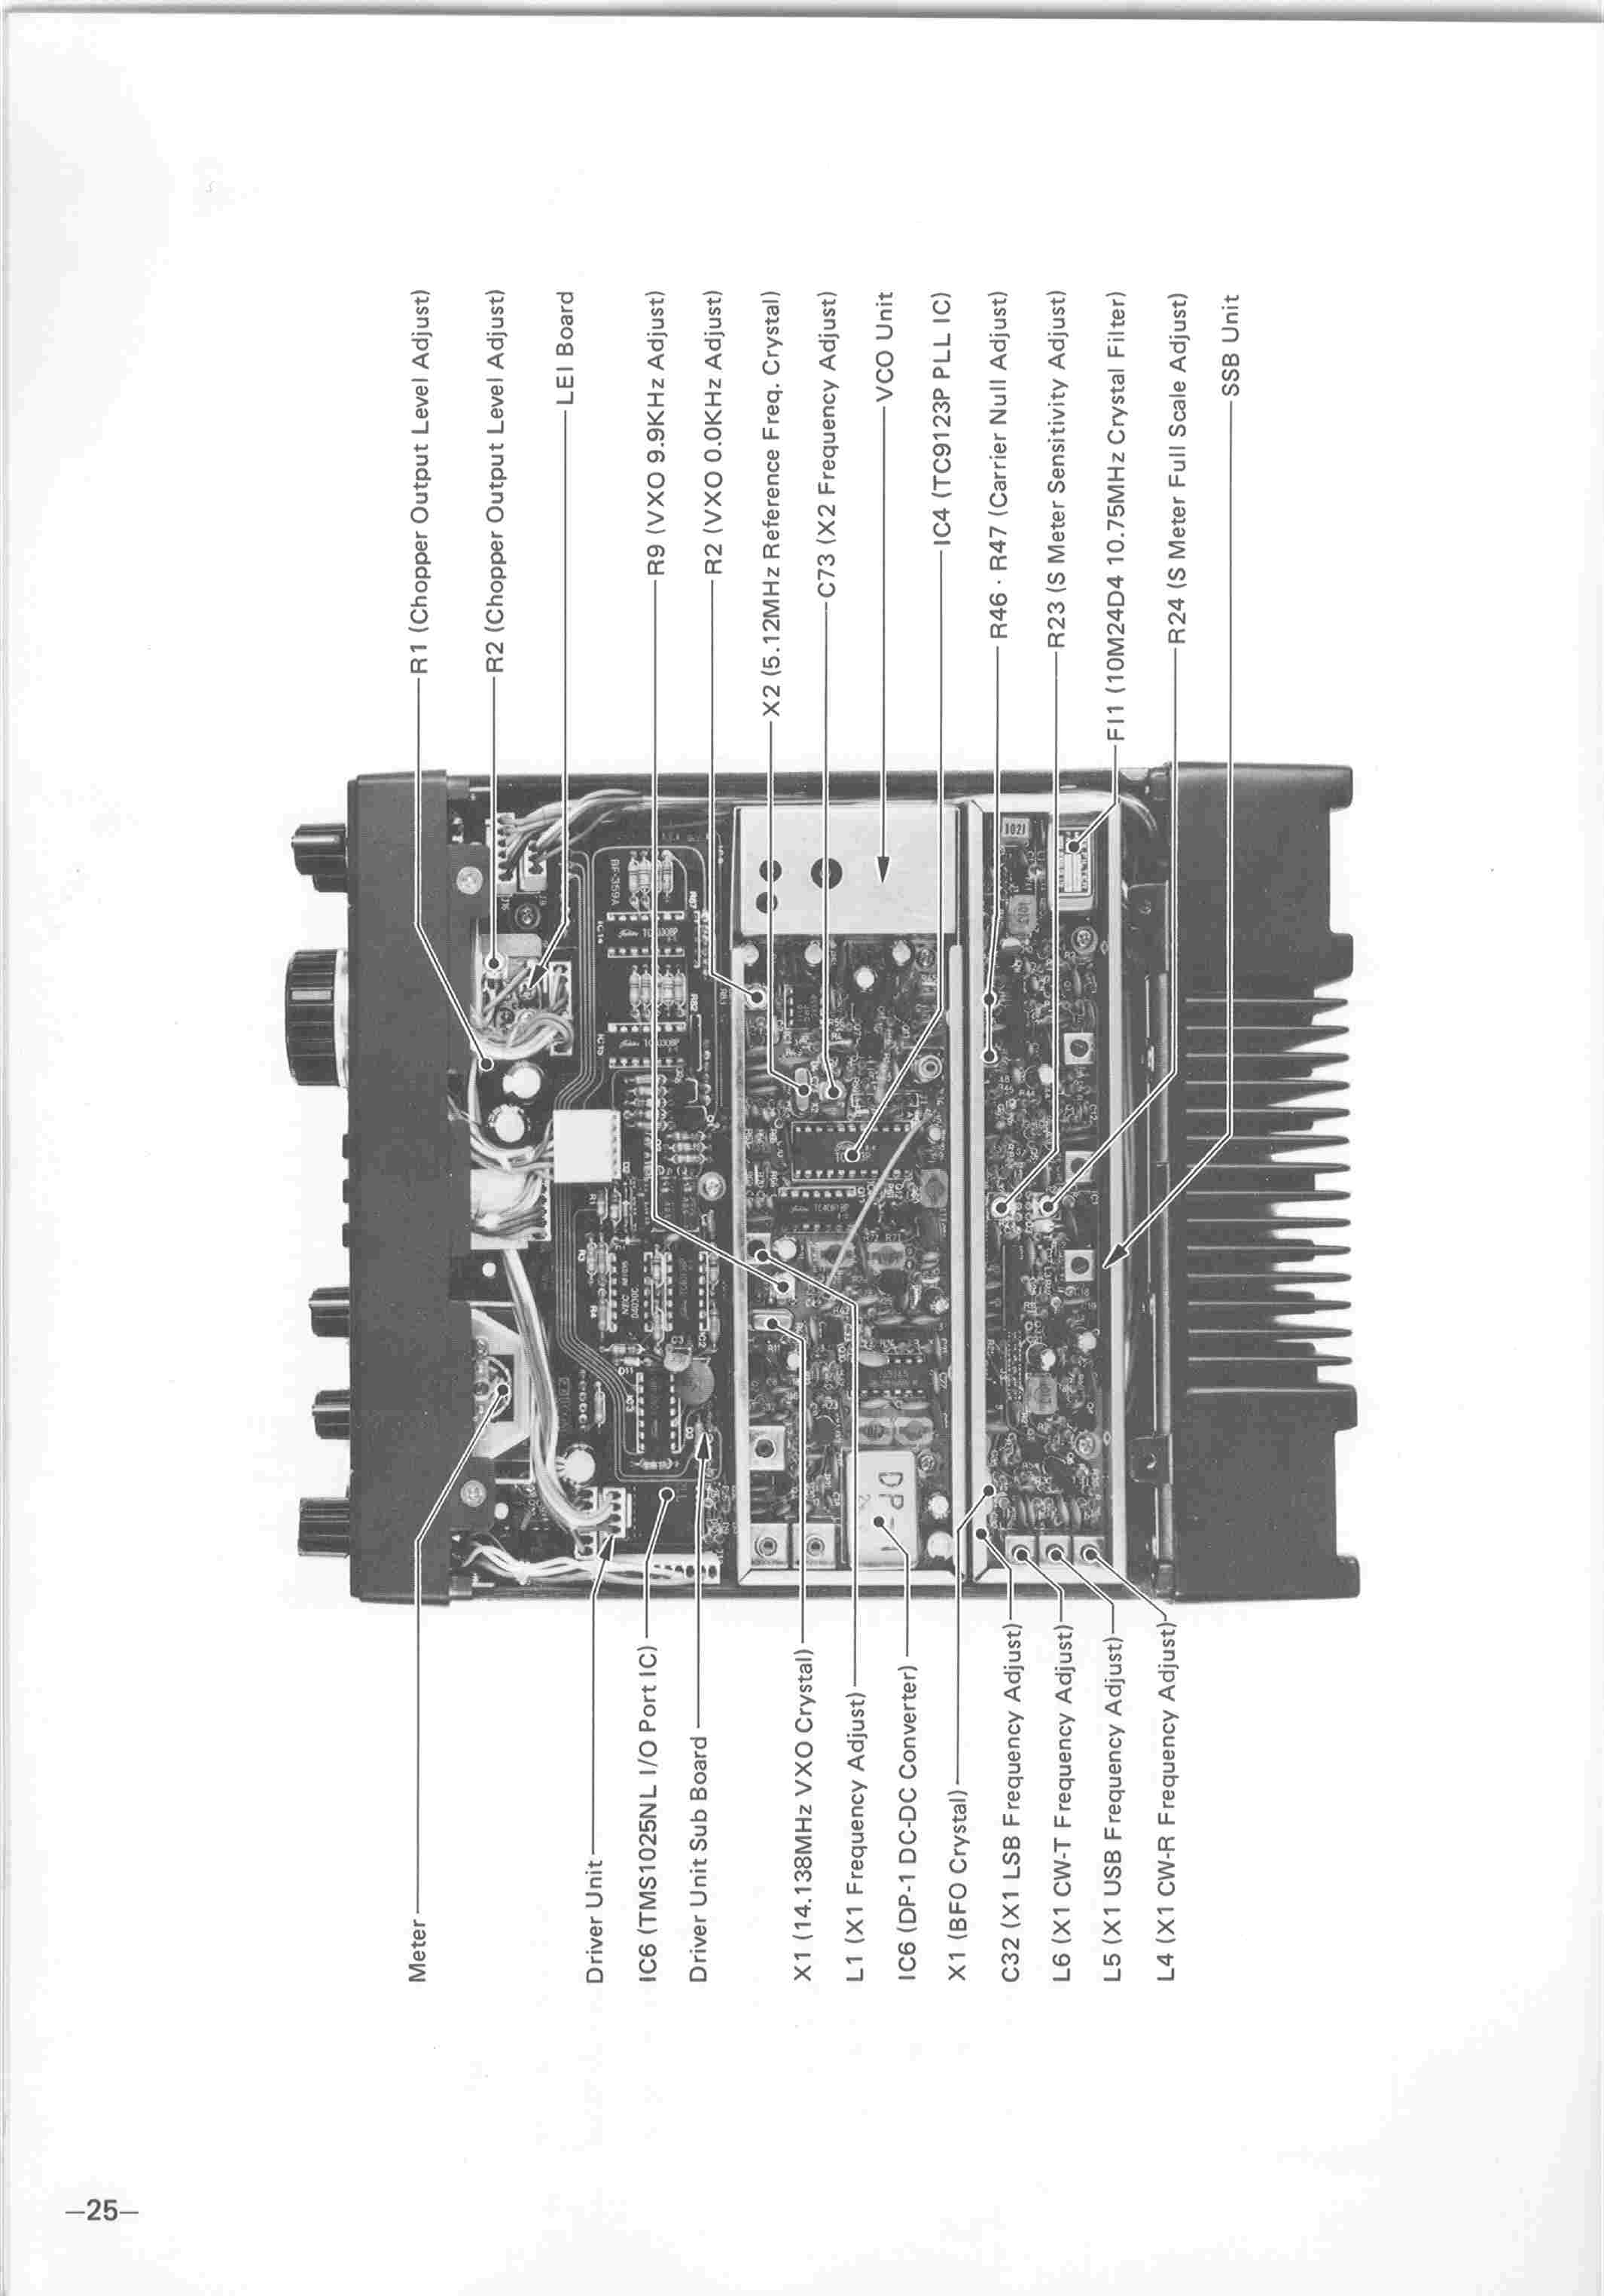 IC-260 Owner's Manual